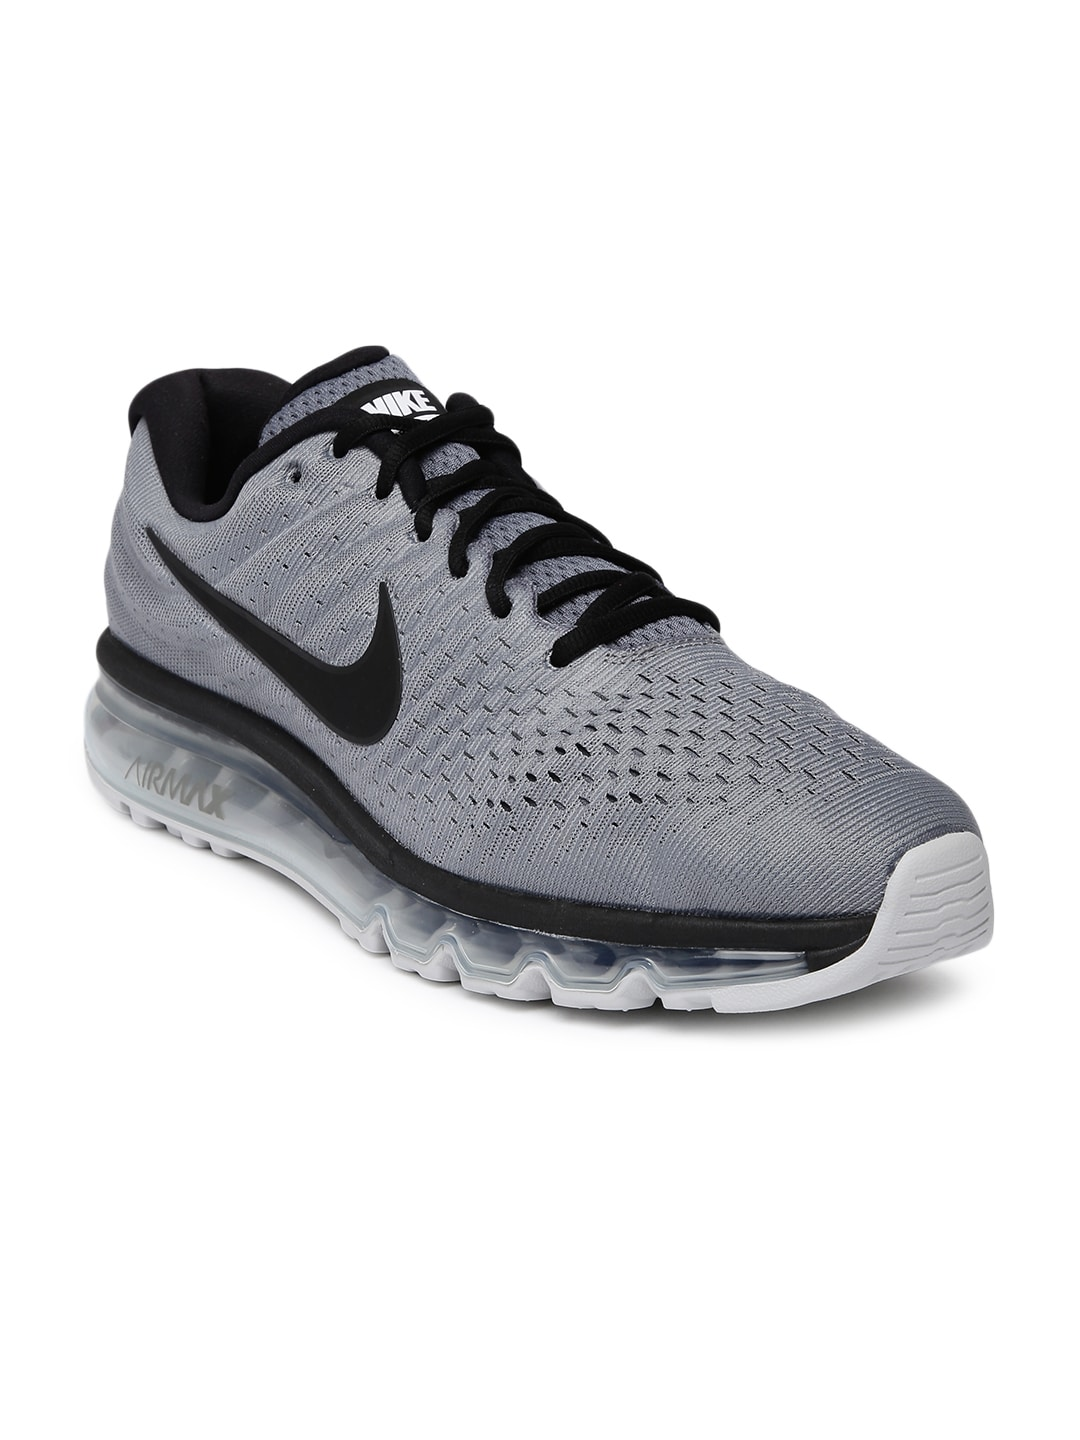 buy online ac910 4d234 Nike Air Max Shoes - Buy Nike Air Max Shoes Online for Men   Women